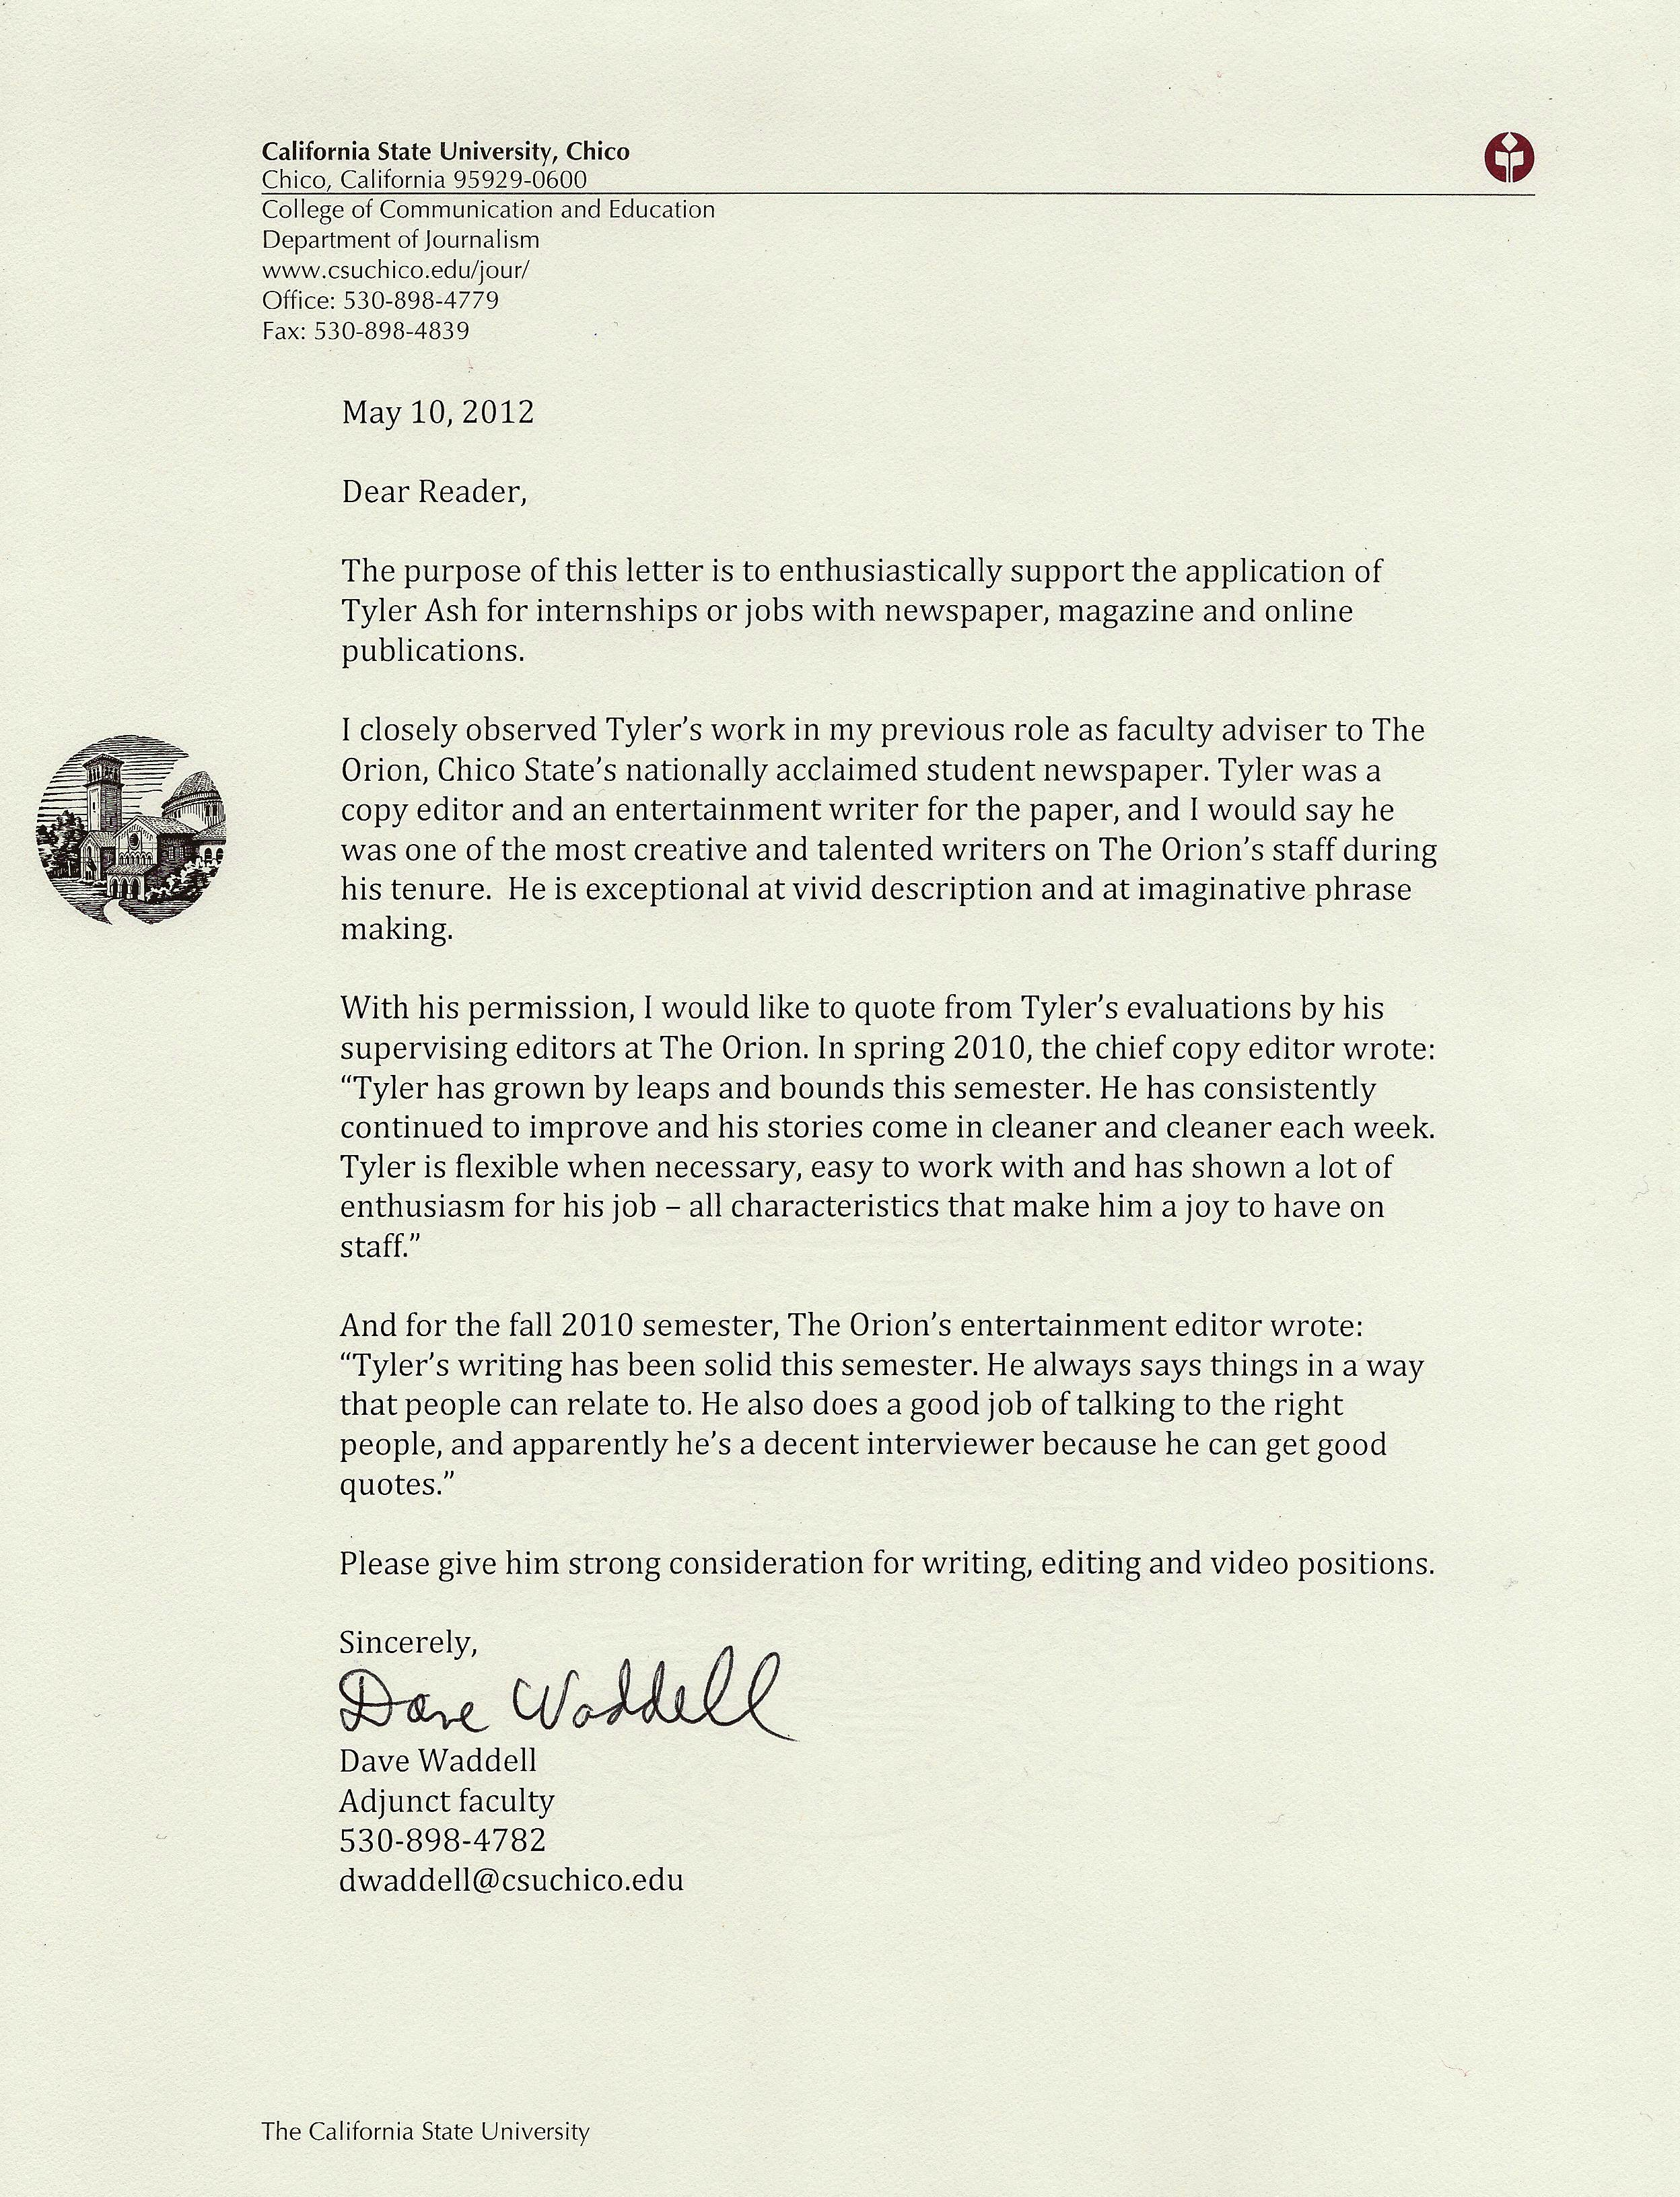 Recommendation Letter for Faculty Position New Letter Of Re Mendation From former Faculty Advisor Of